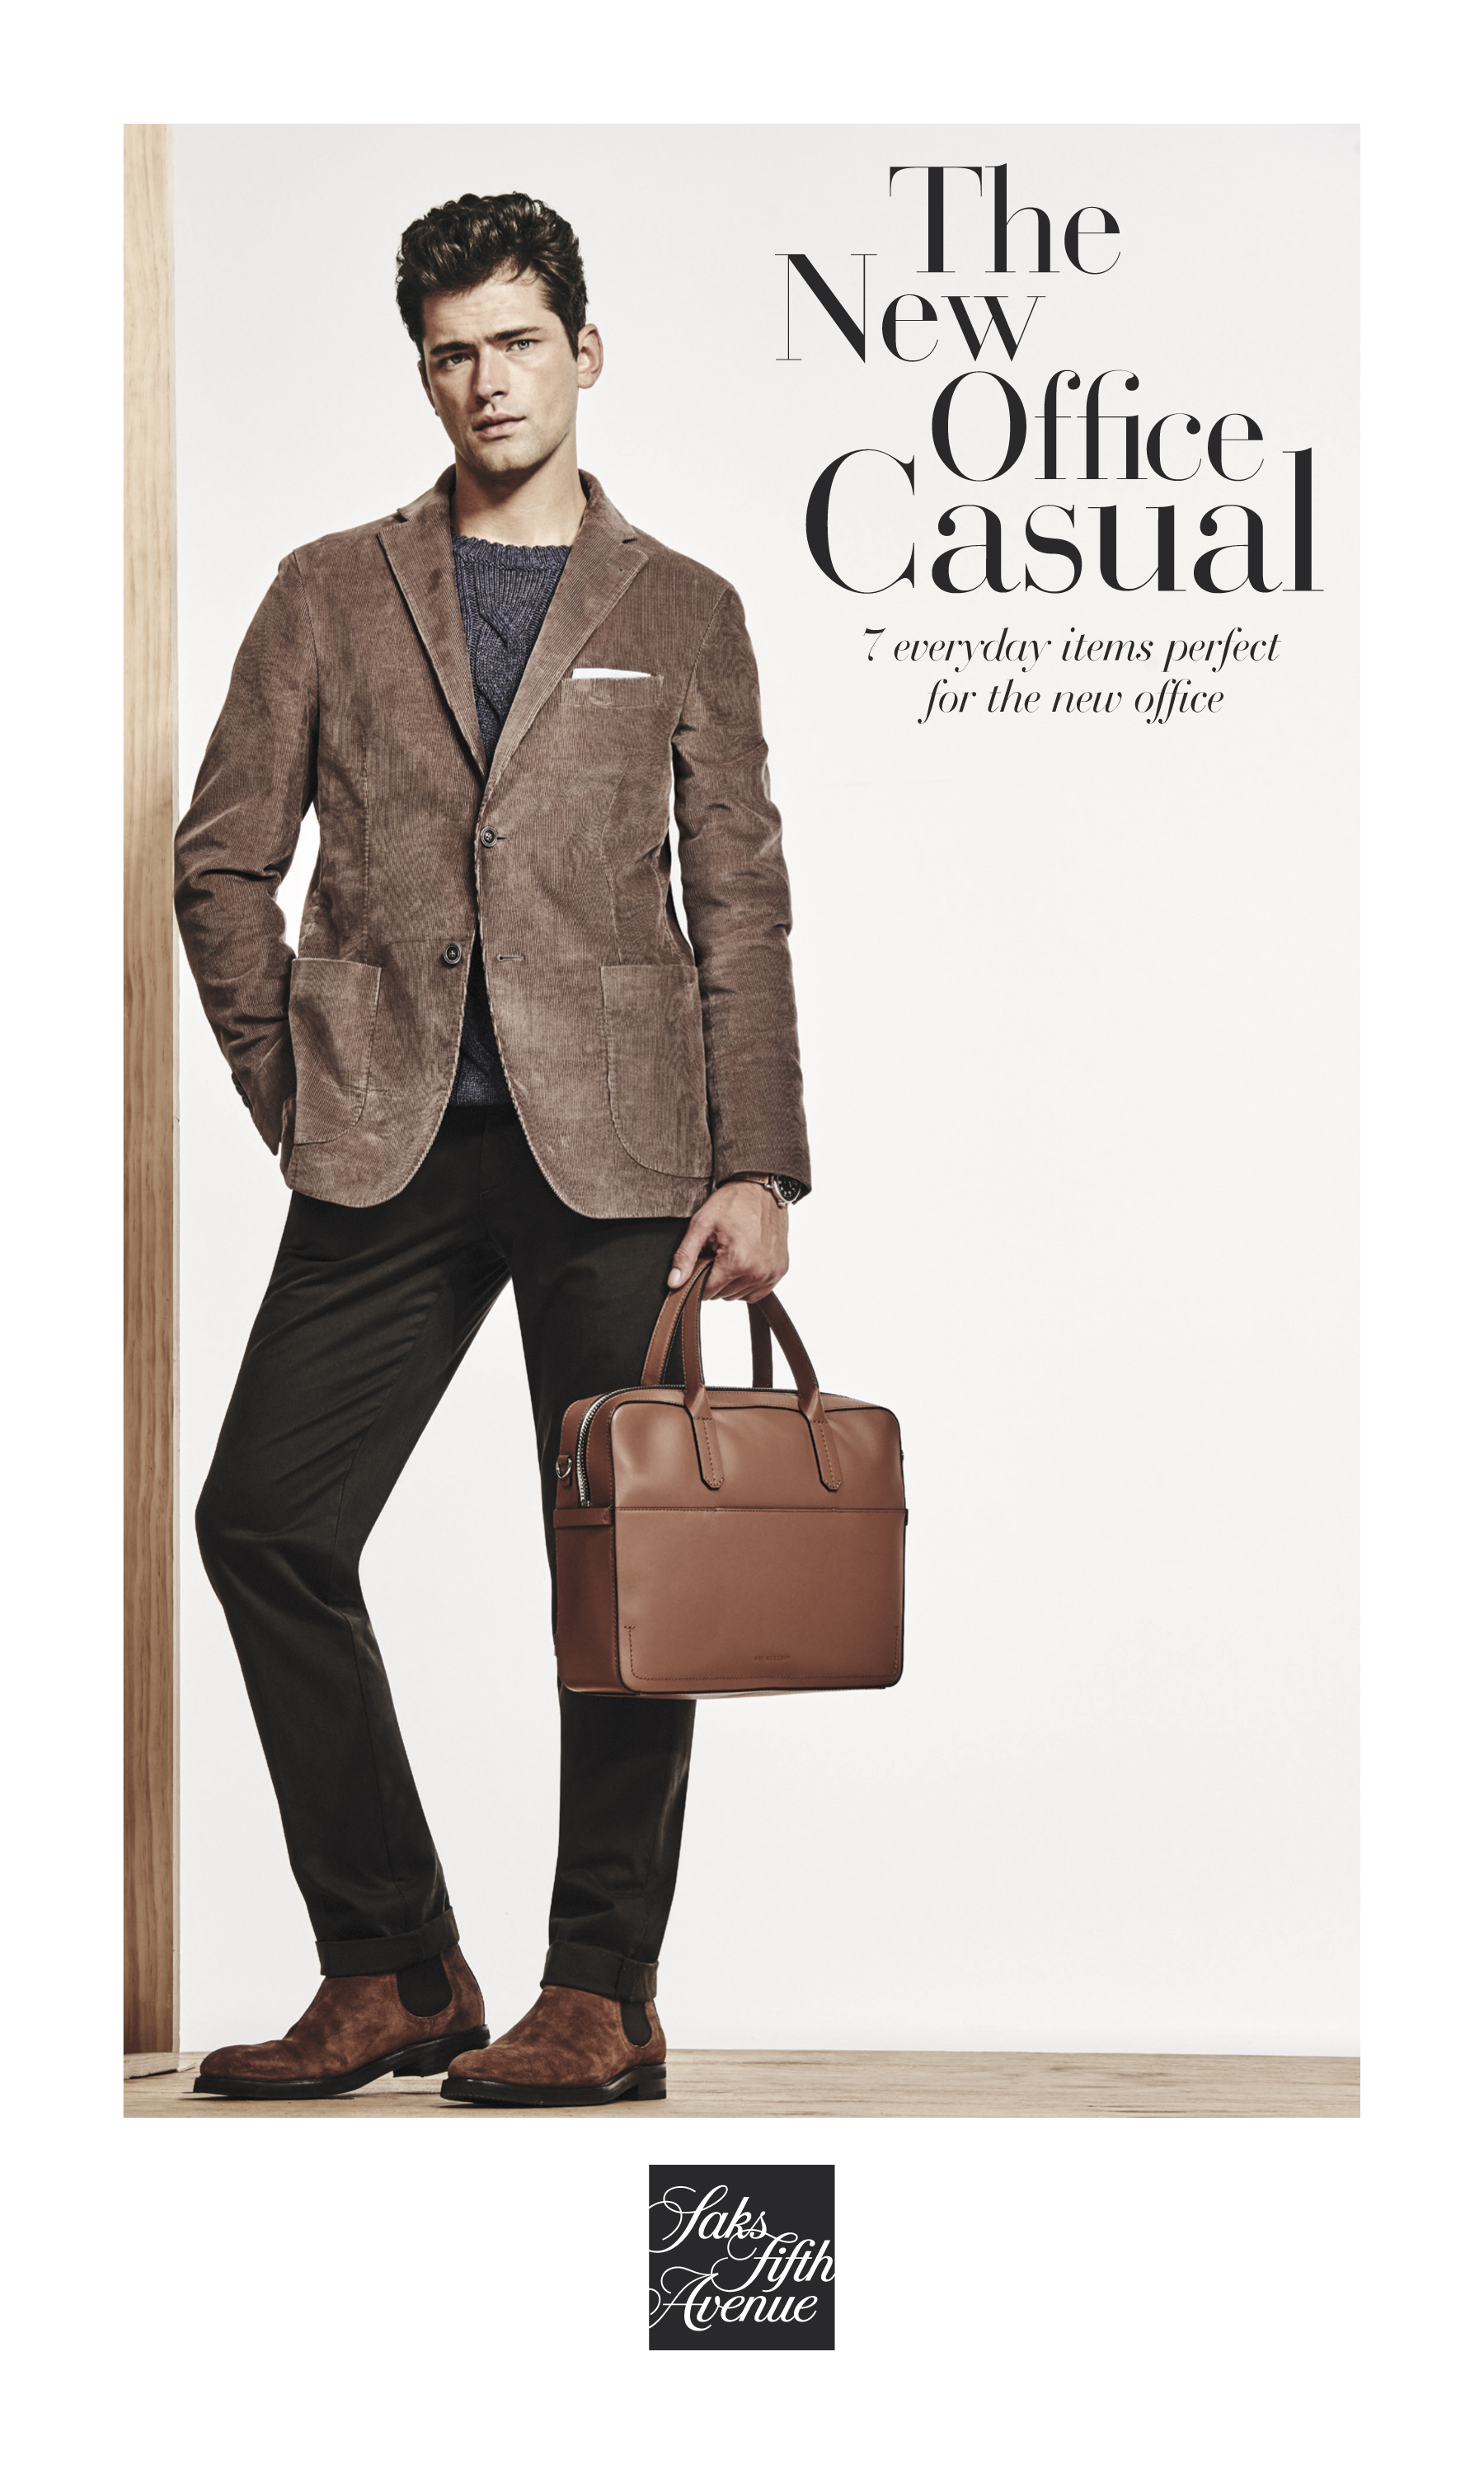 8eff9a7127 Saks Fifth Avenue Creates Menswear Manual – the Ultimate Guide to New  Office Casual